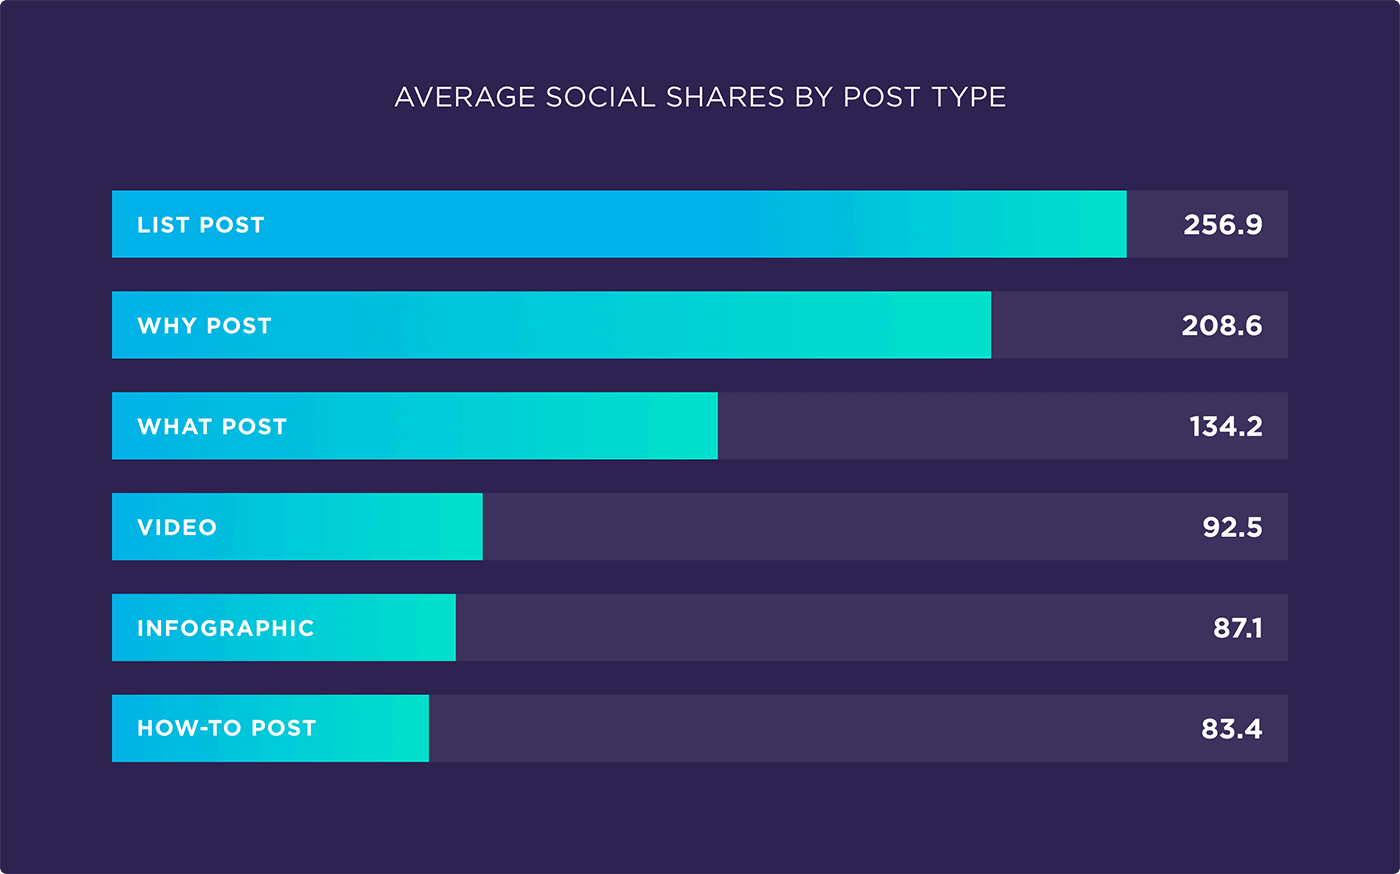 Average social shares by post type